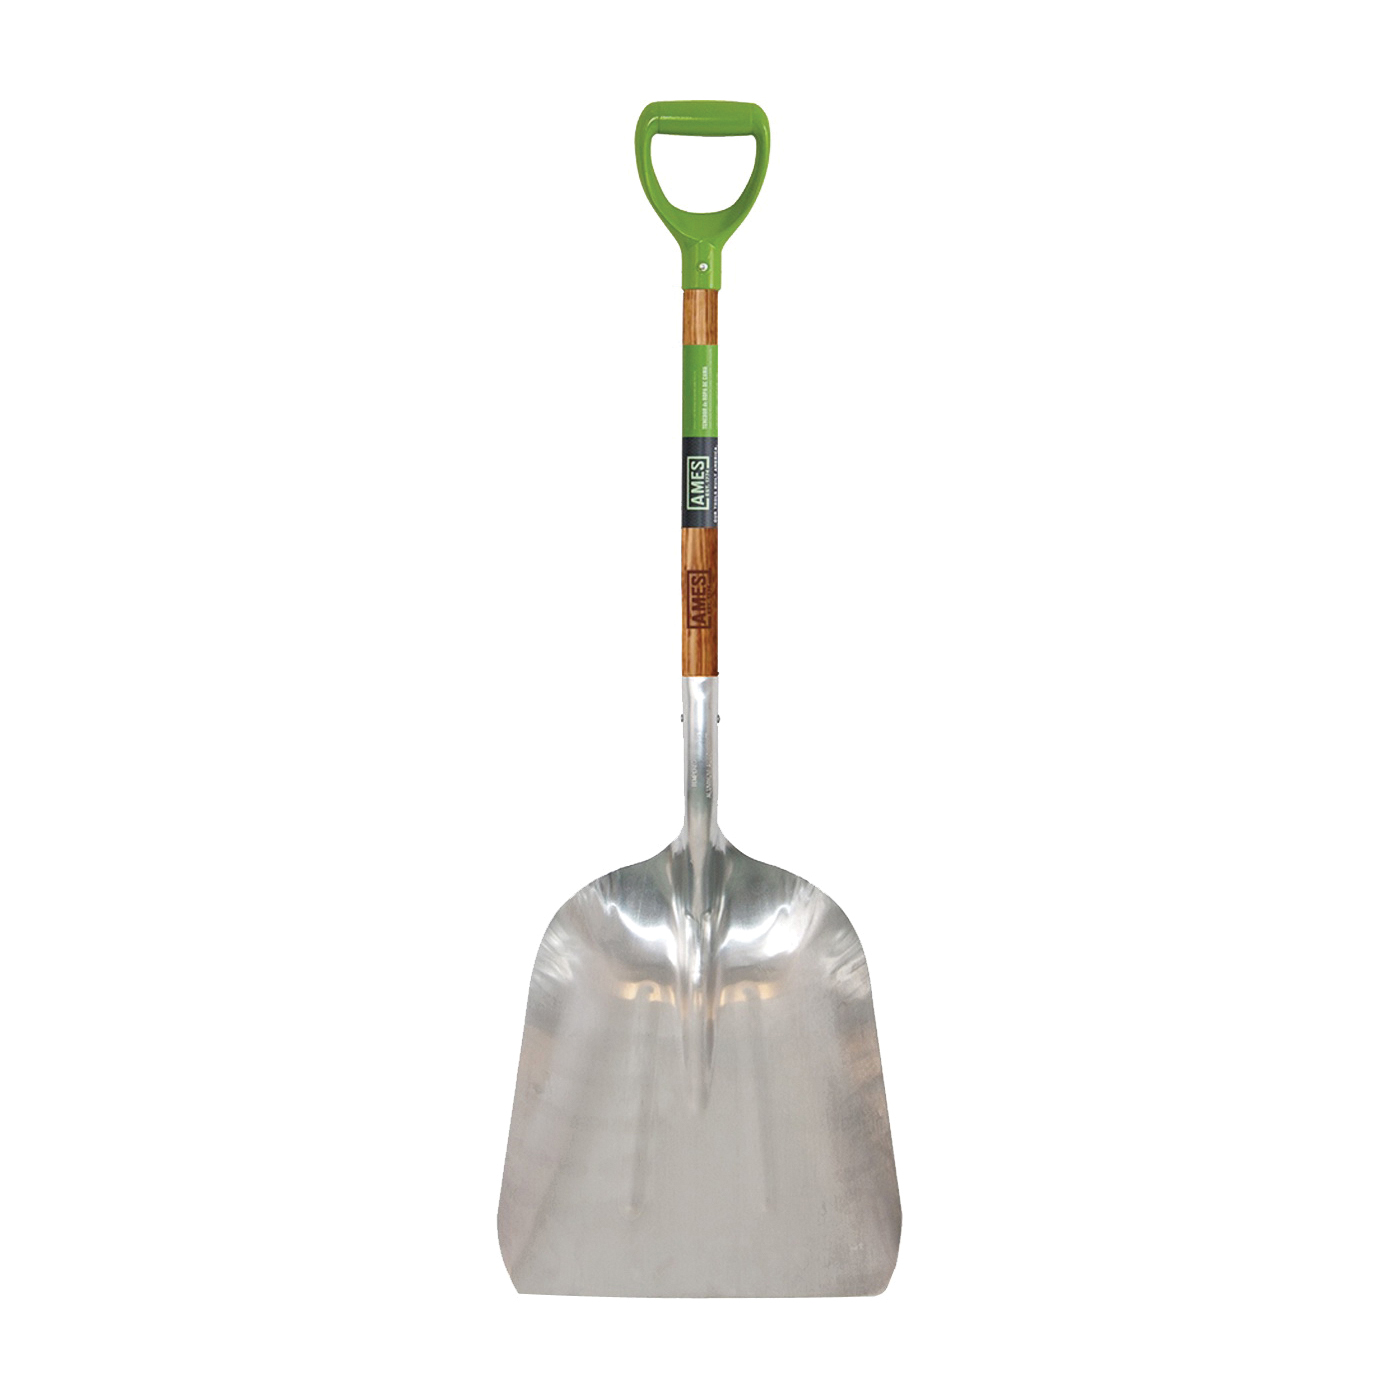 Picture of AMES 2672100 Scoop Shovel, 15 in W Blade, 11-1/4 in L Blade, Aluminum Blade, Hardwood Handle, D-Shaped Handle